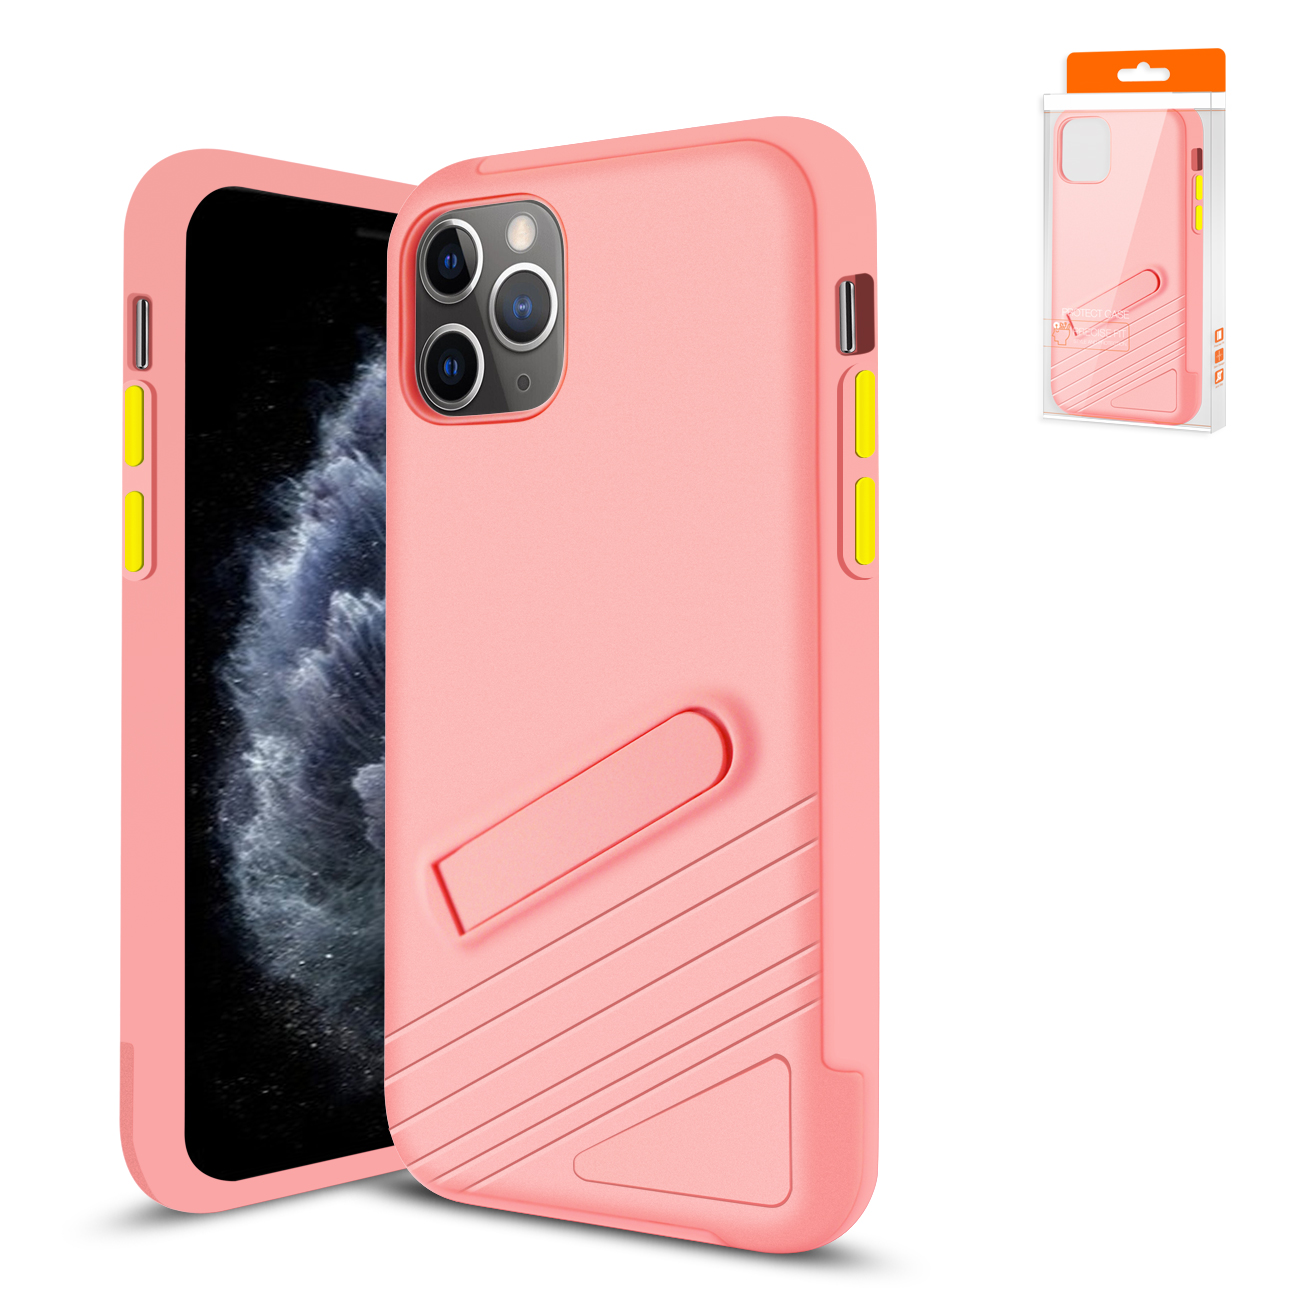 Apple iPhone 11 Pro Armor Cases In Pink